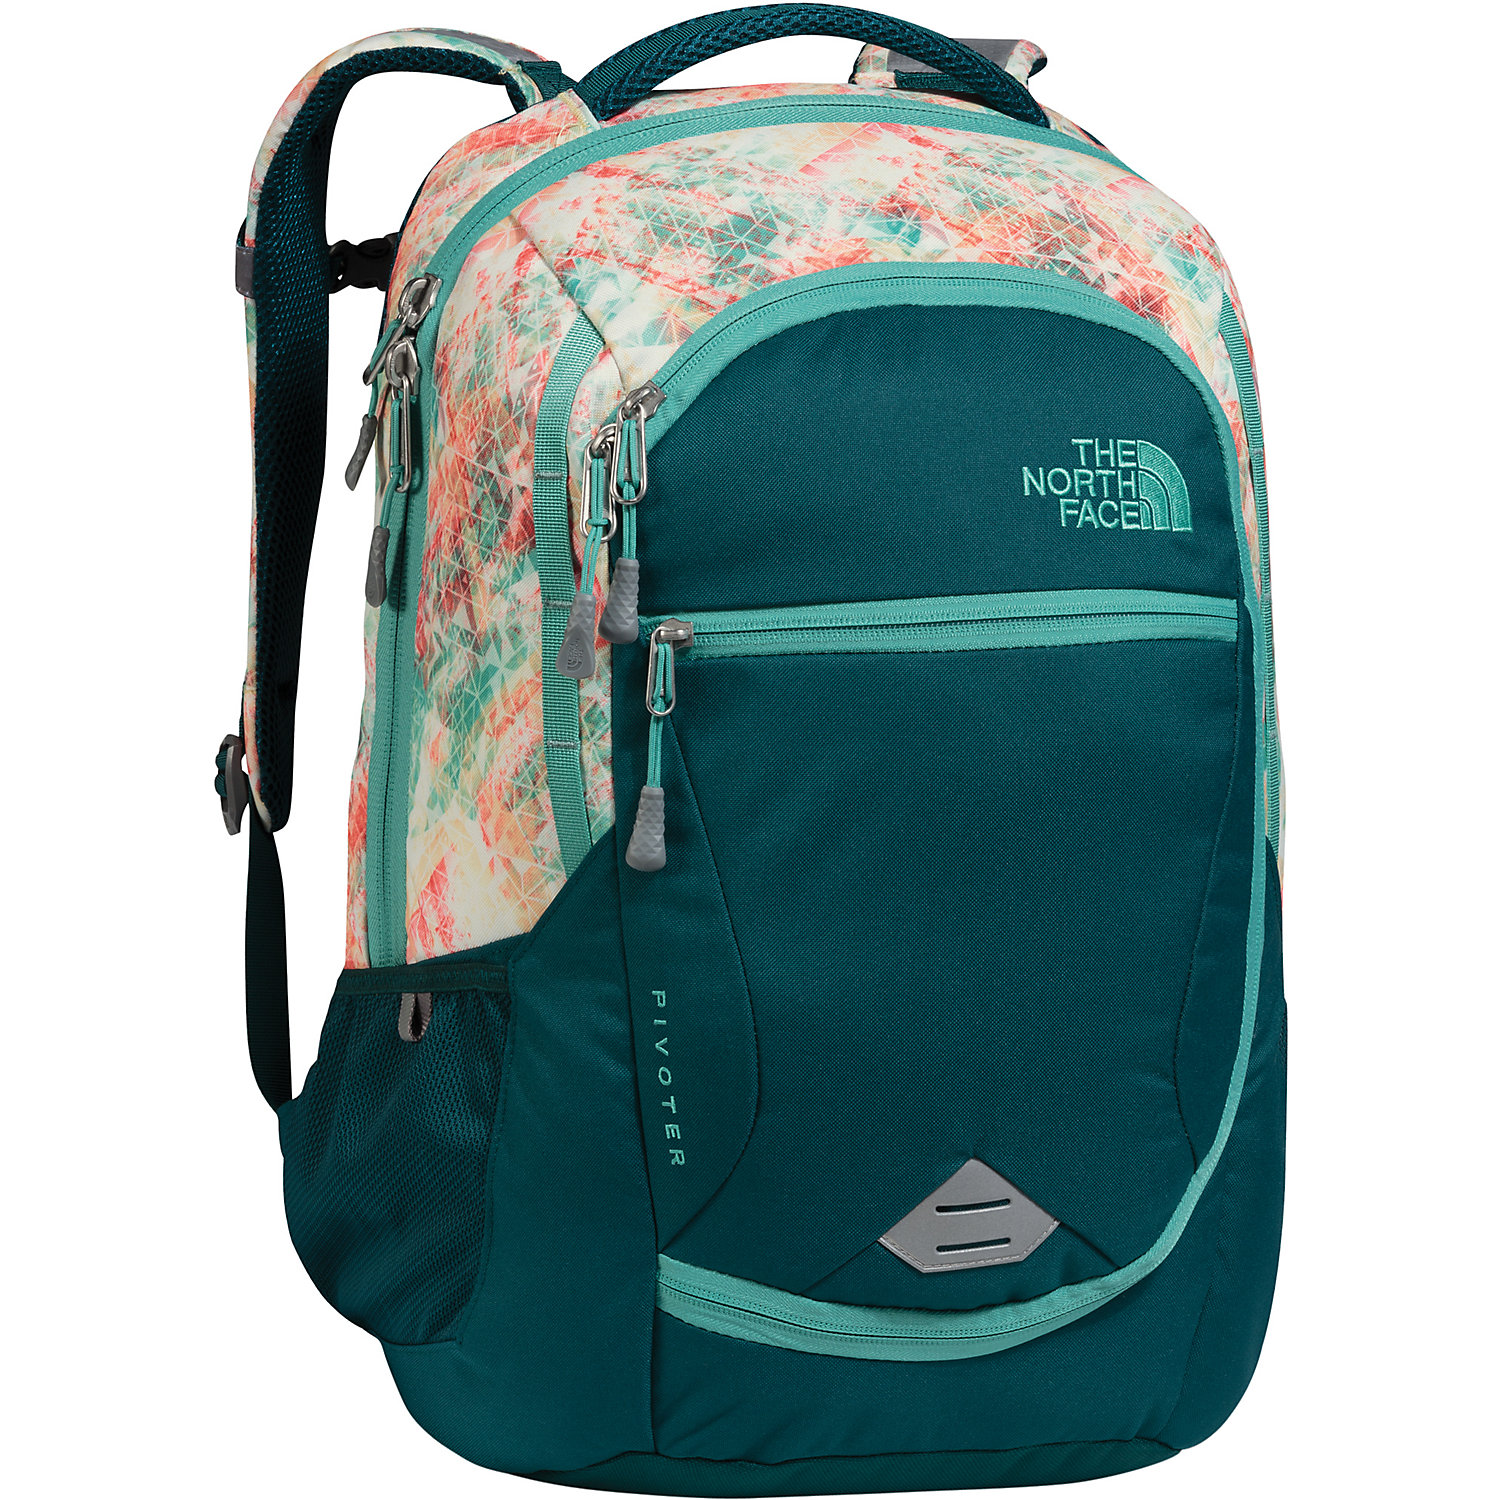 8db70c5be The North Face Women's Pivoter Backpack